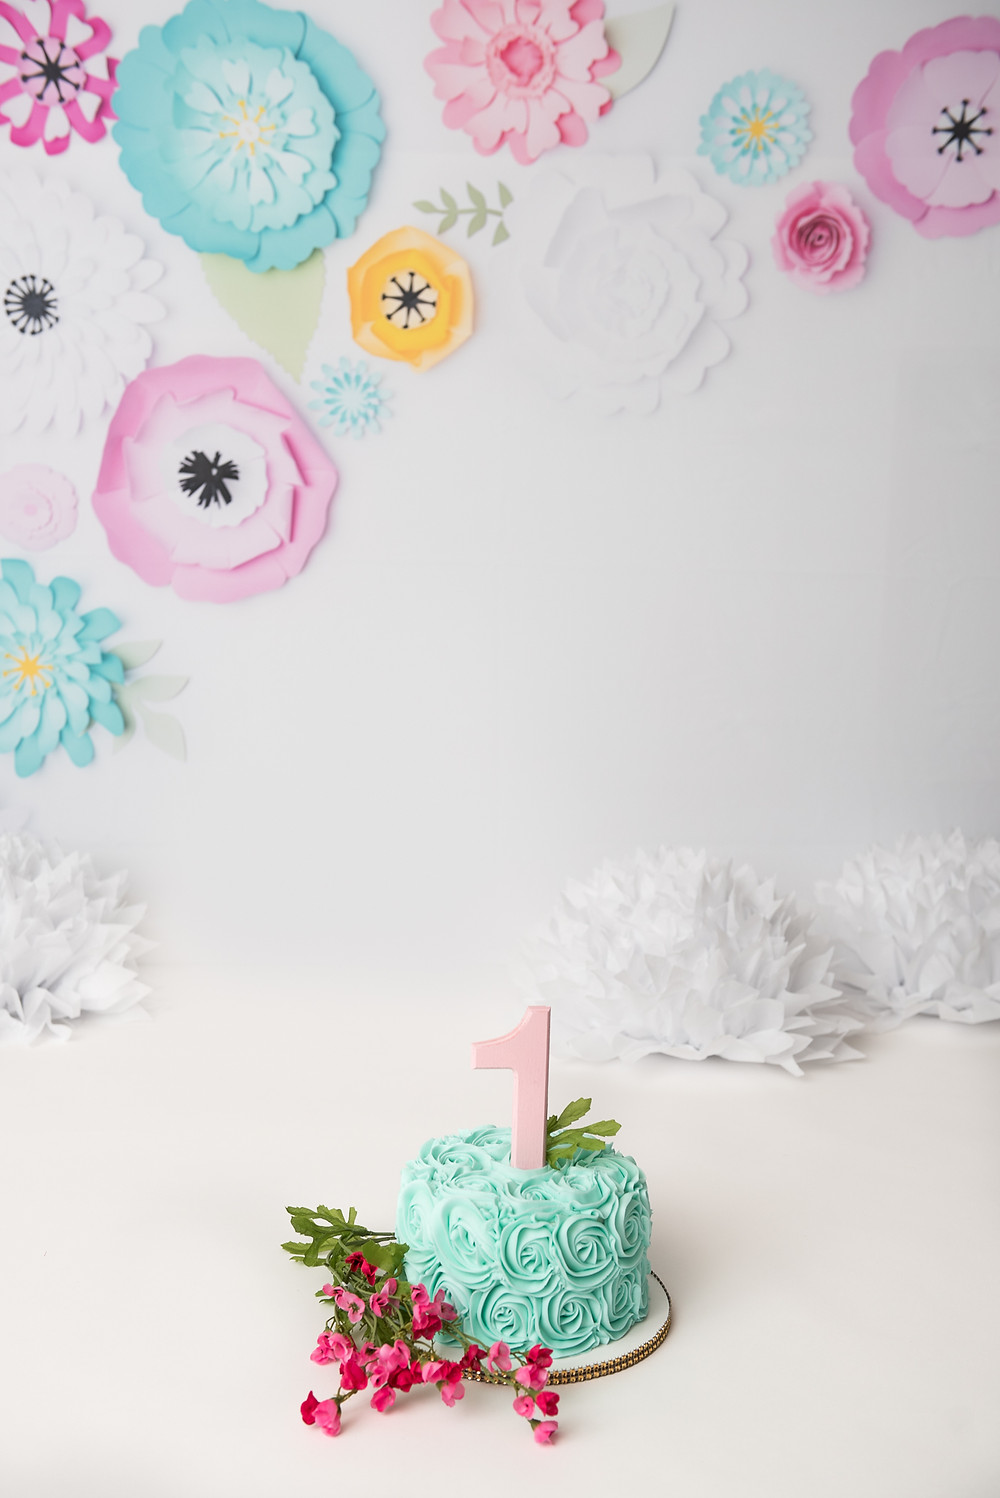 Long Island cake smash for 1st birthday baby girl with pink and aqua flowers